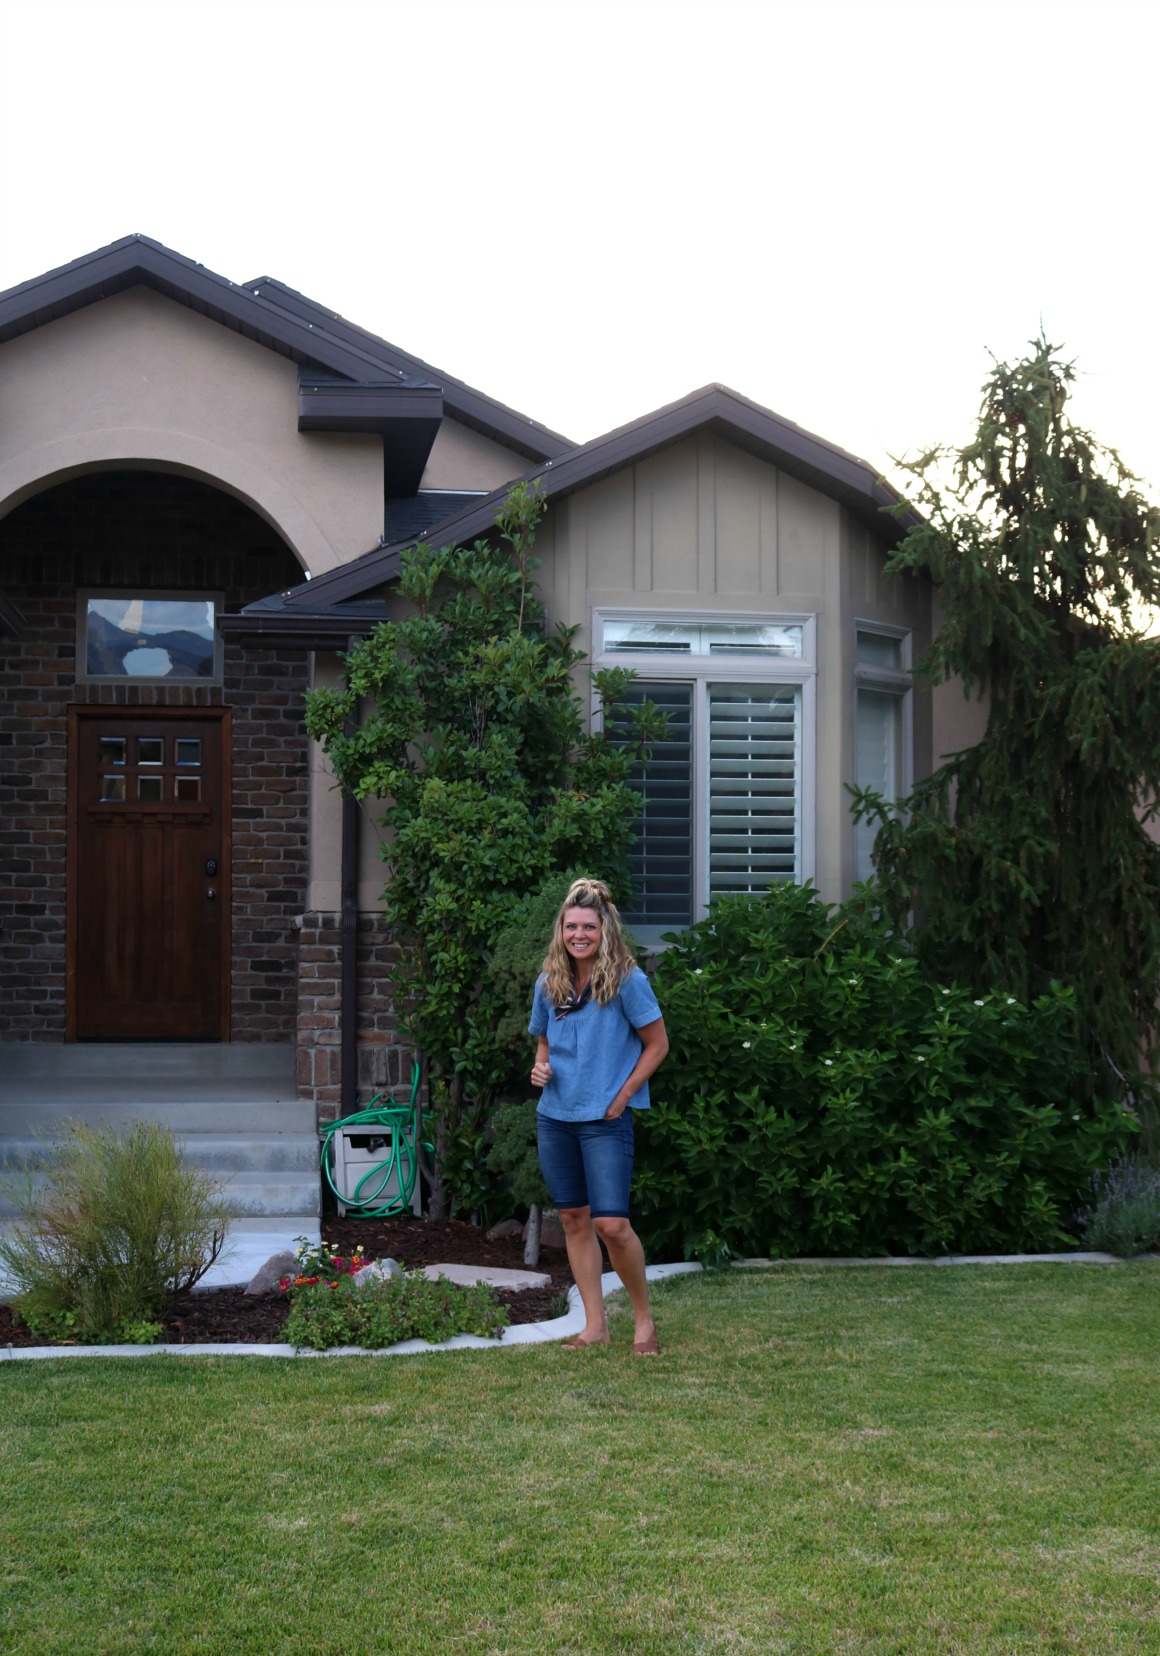 Our Utah Home Tour and Tips to Downsizing and Moving